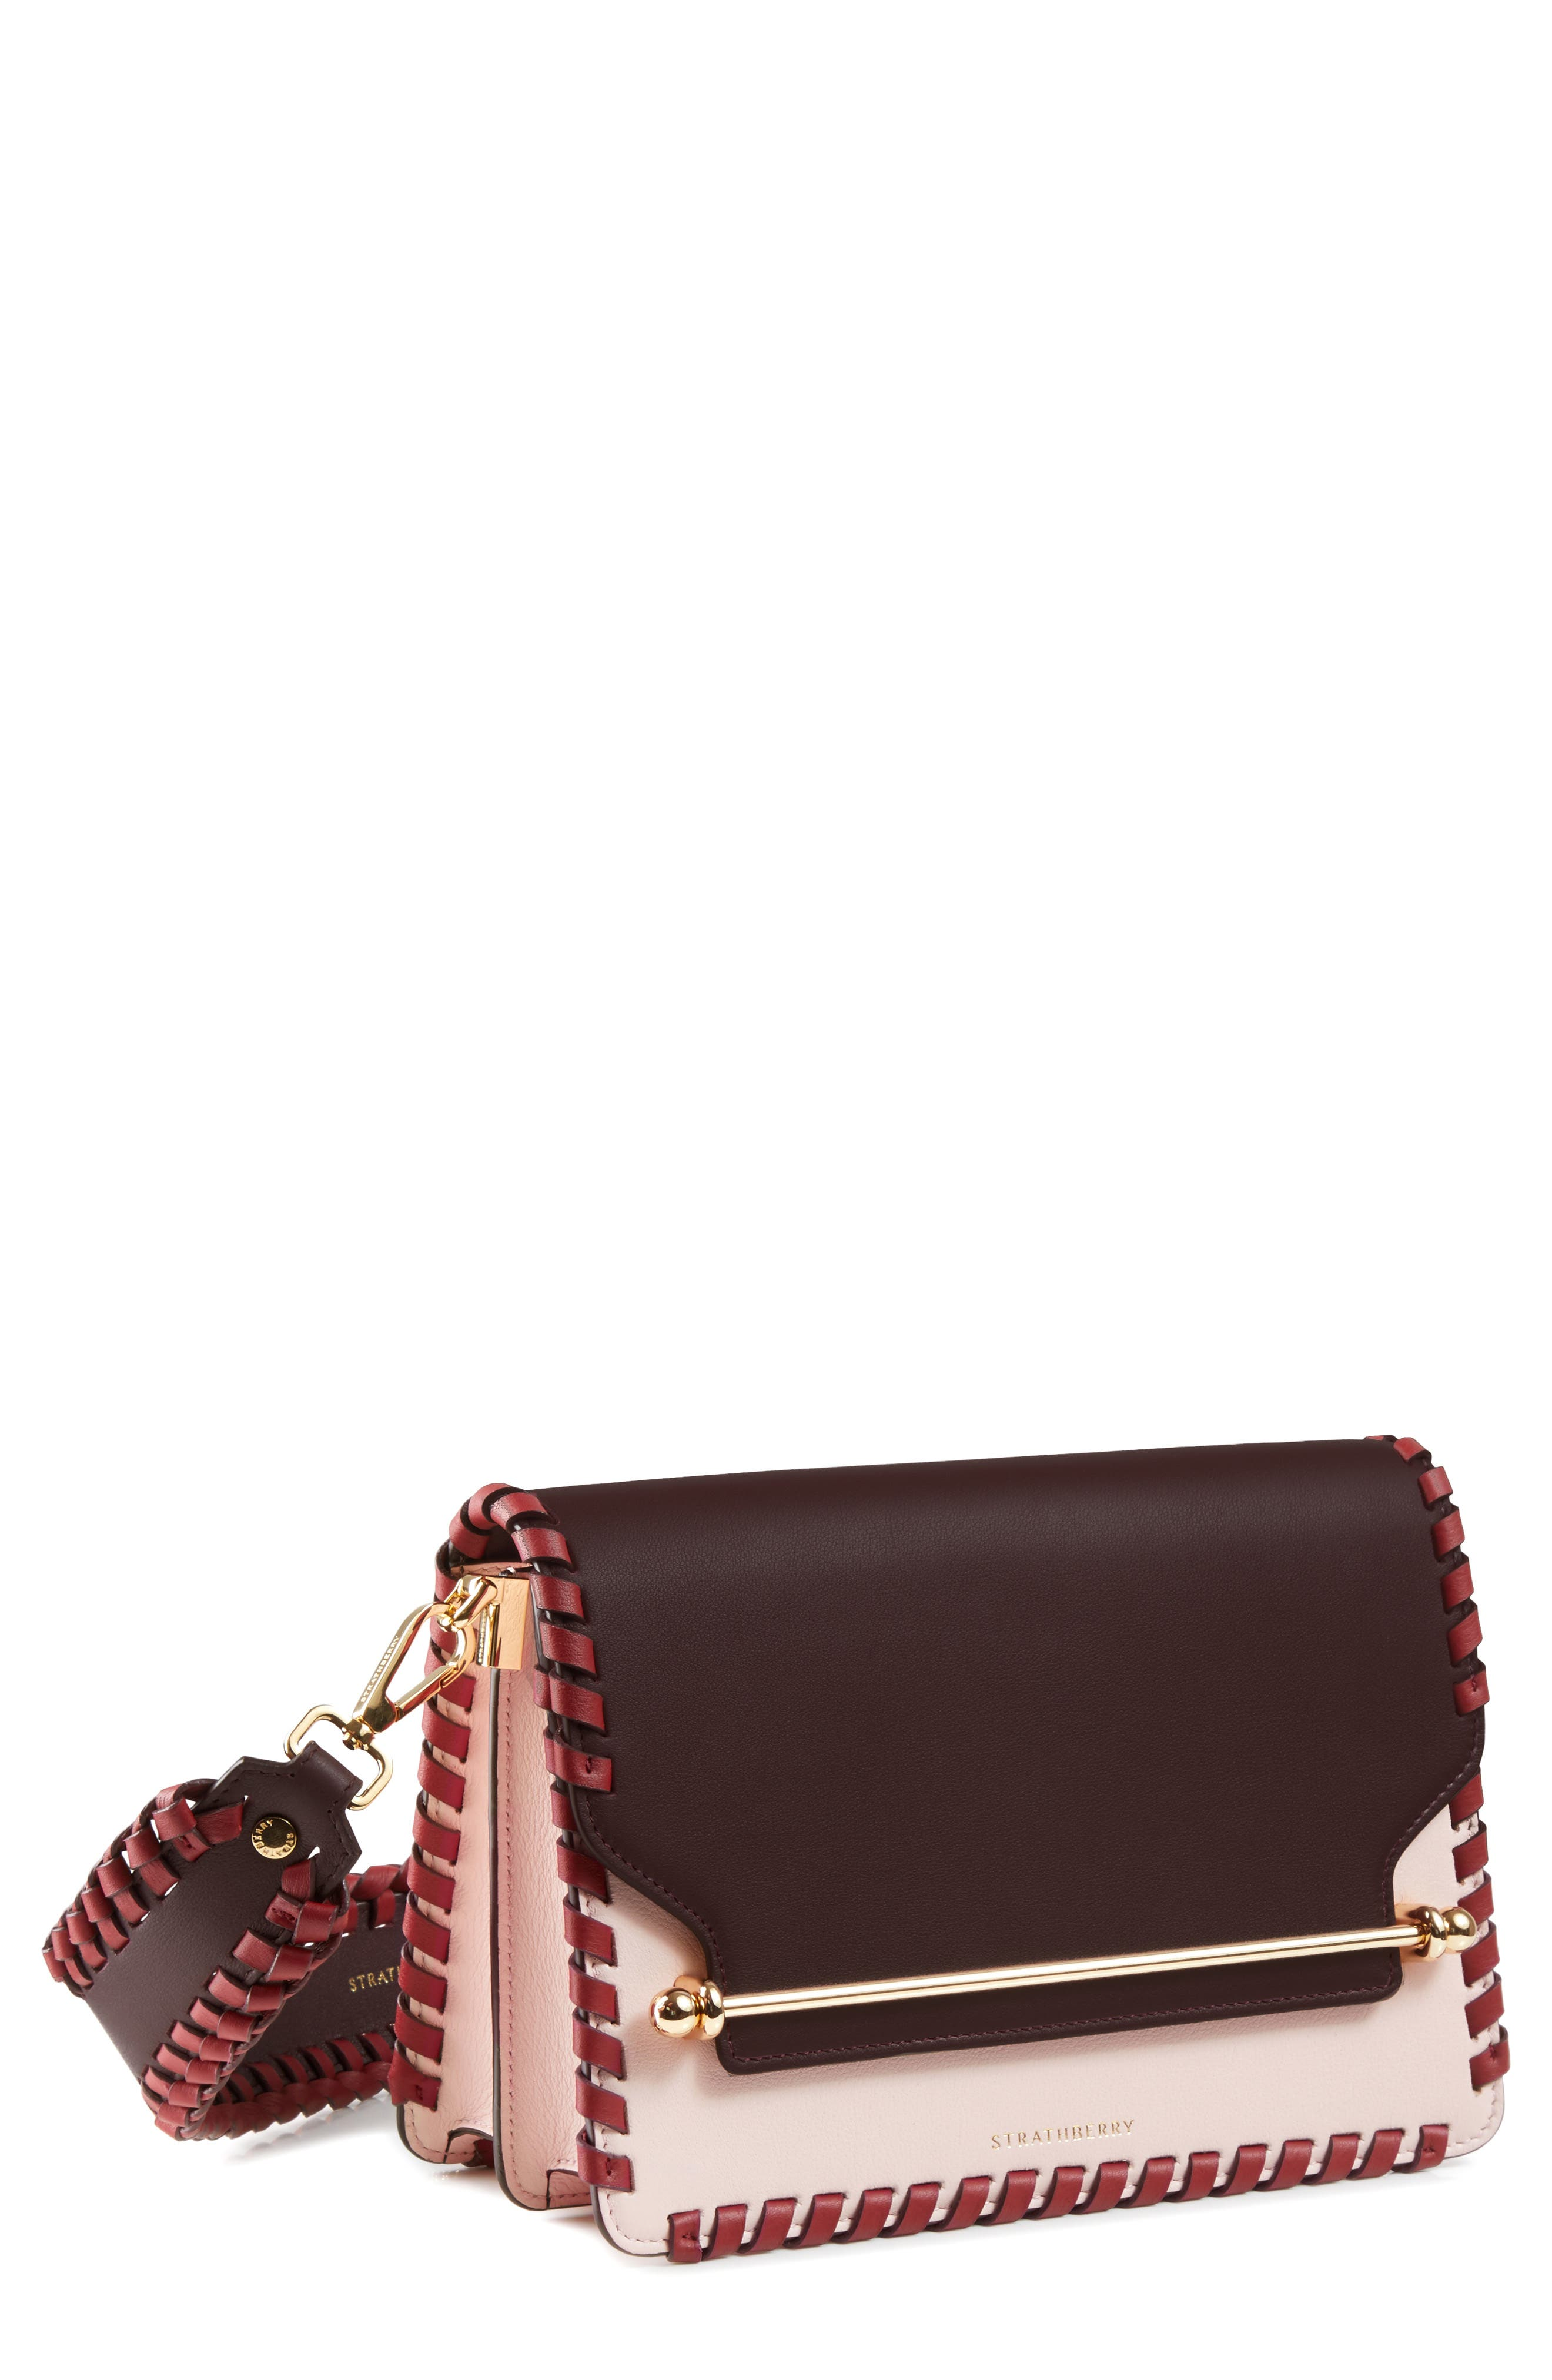 East/West Whipstitch Leather Crossbody Bag,                             Main thumbnail 1, color,                             BURGUNDY/ BABY PINK